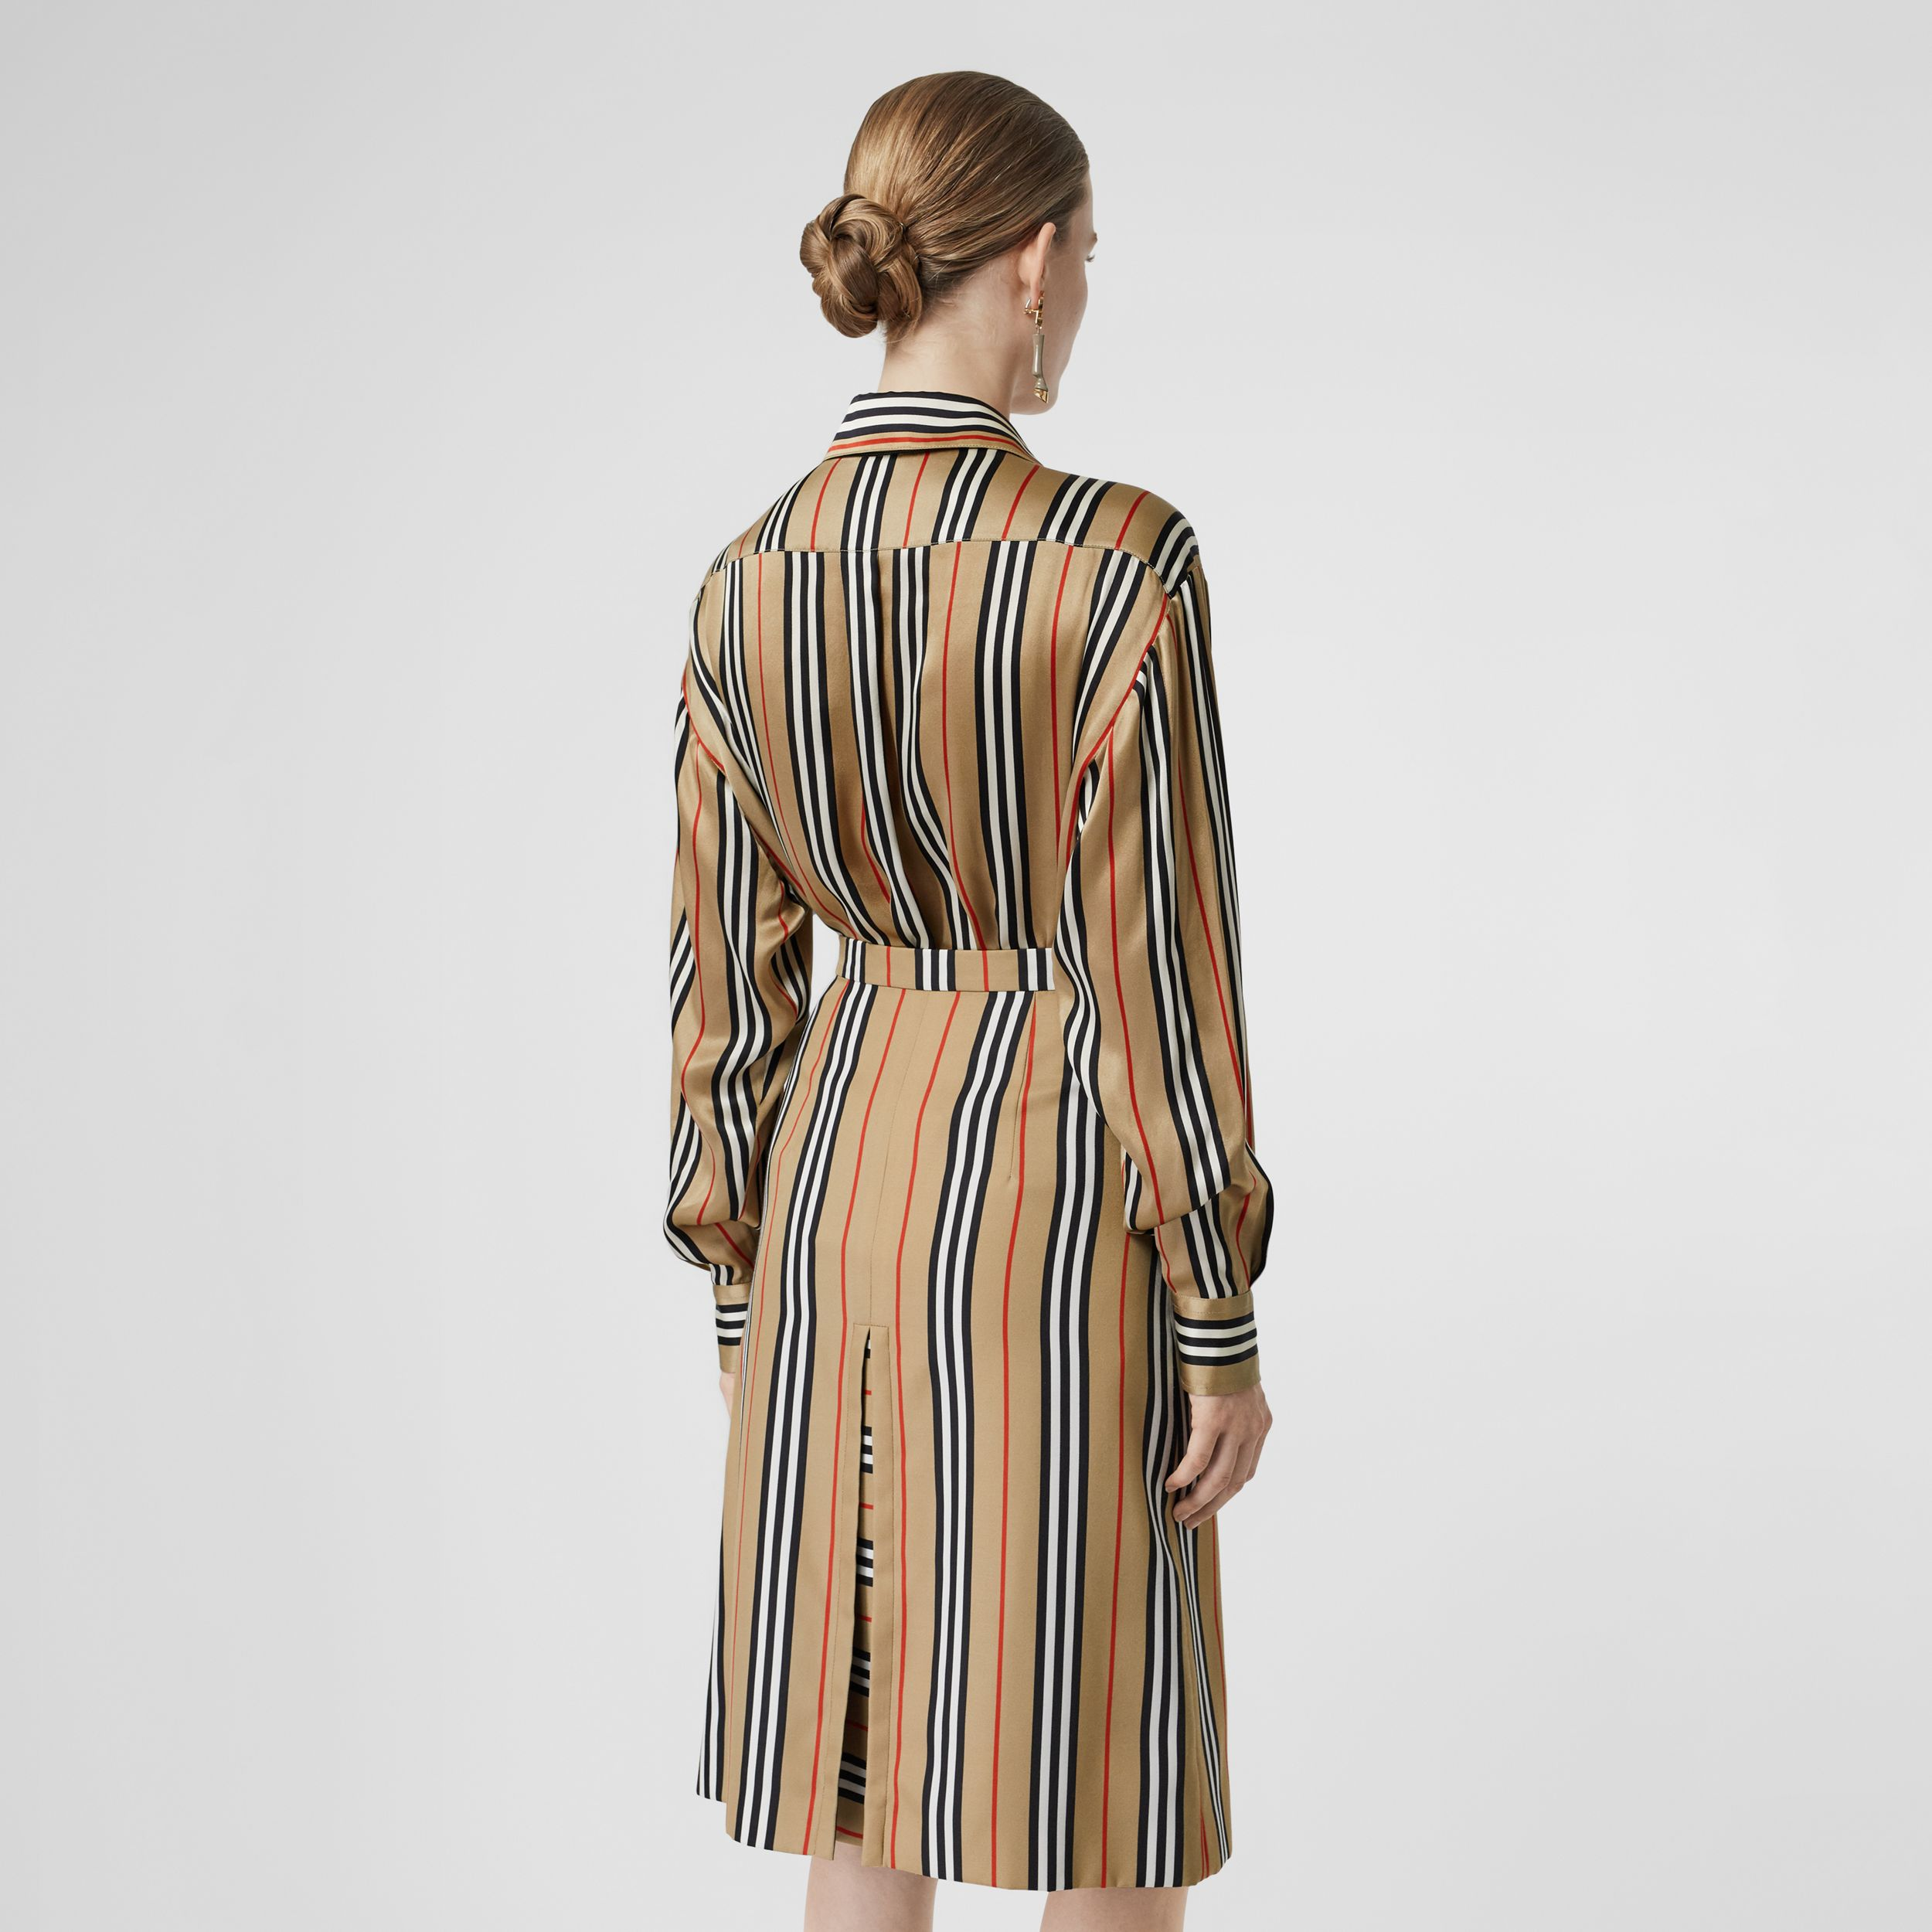 Icon Stripe Silk Shirt in Archive Beige - Women | Burberry - 3